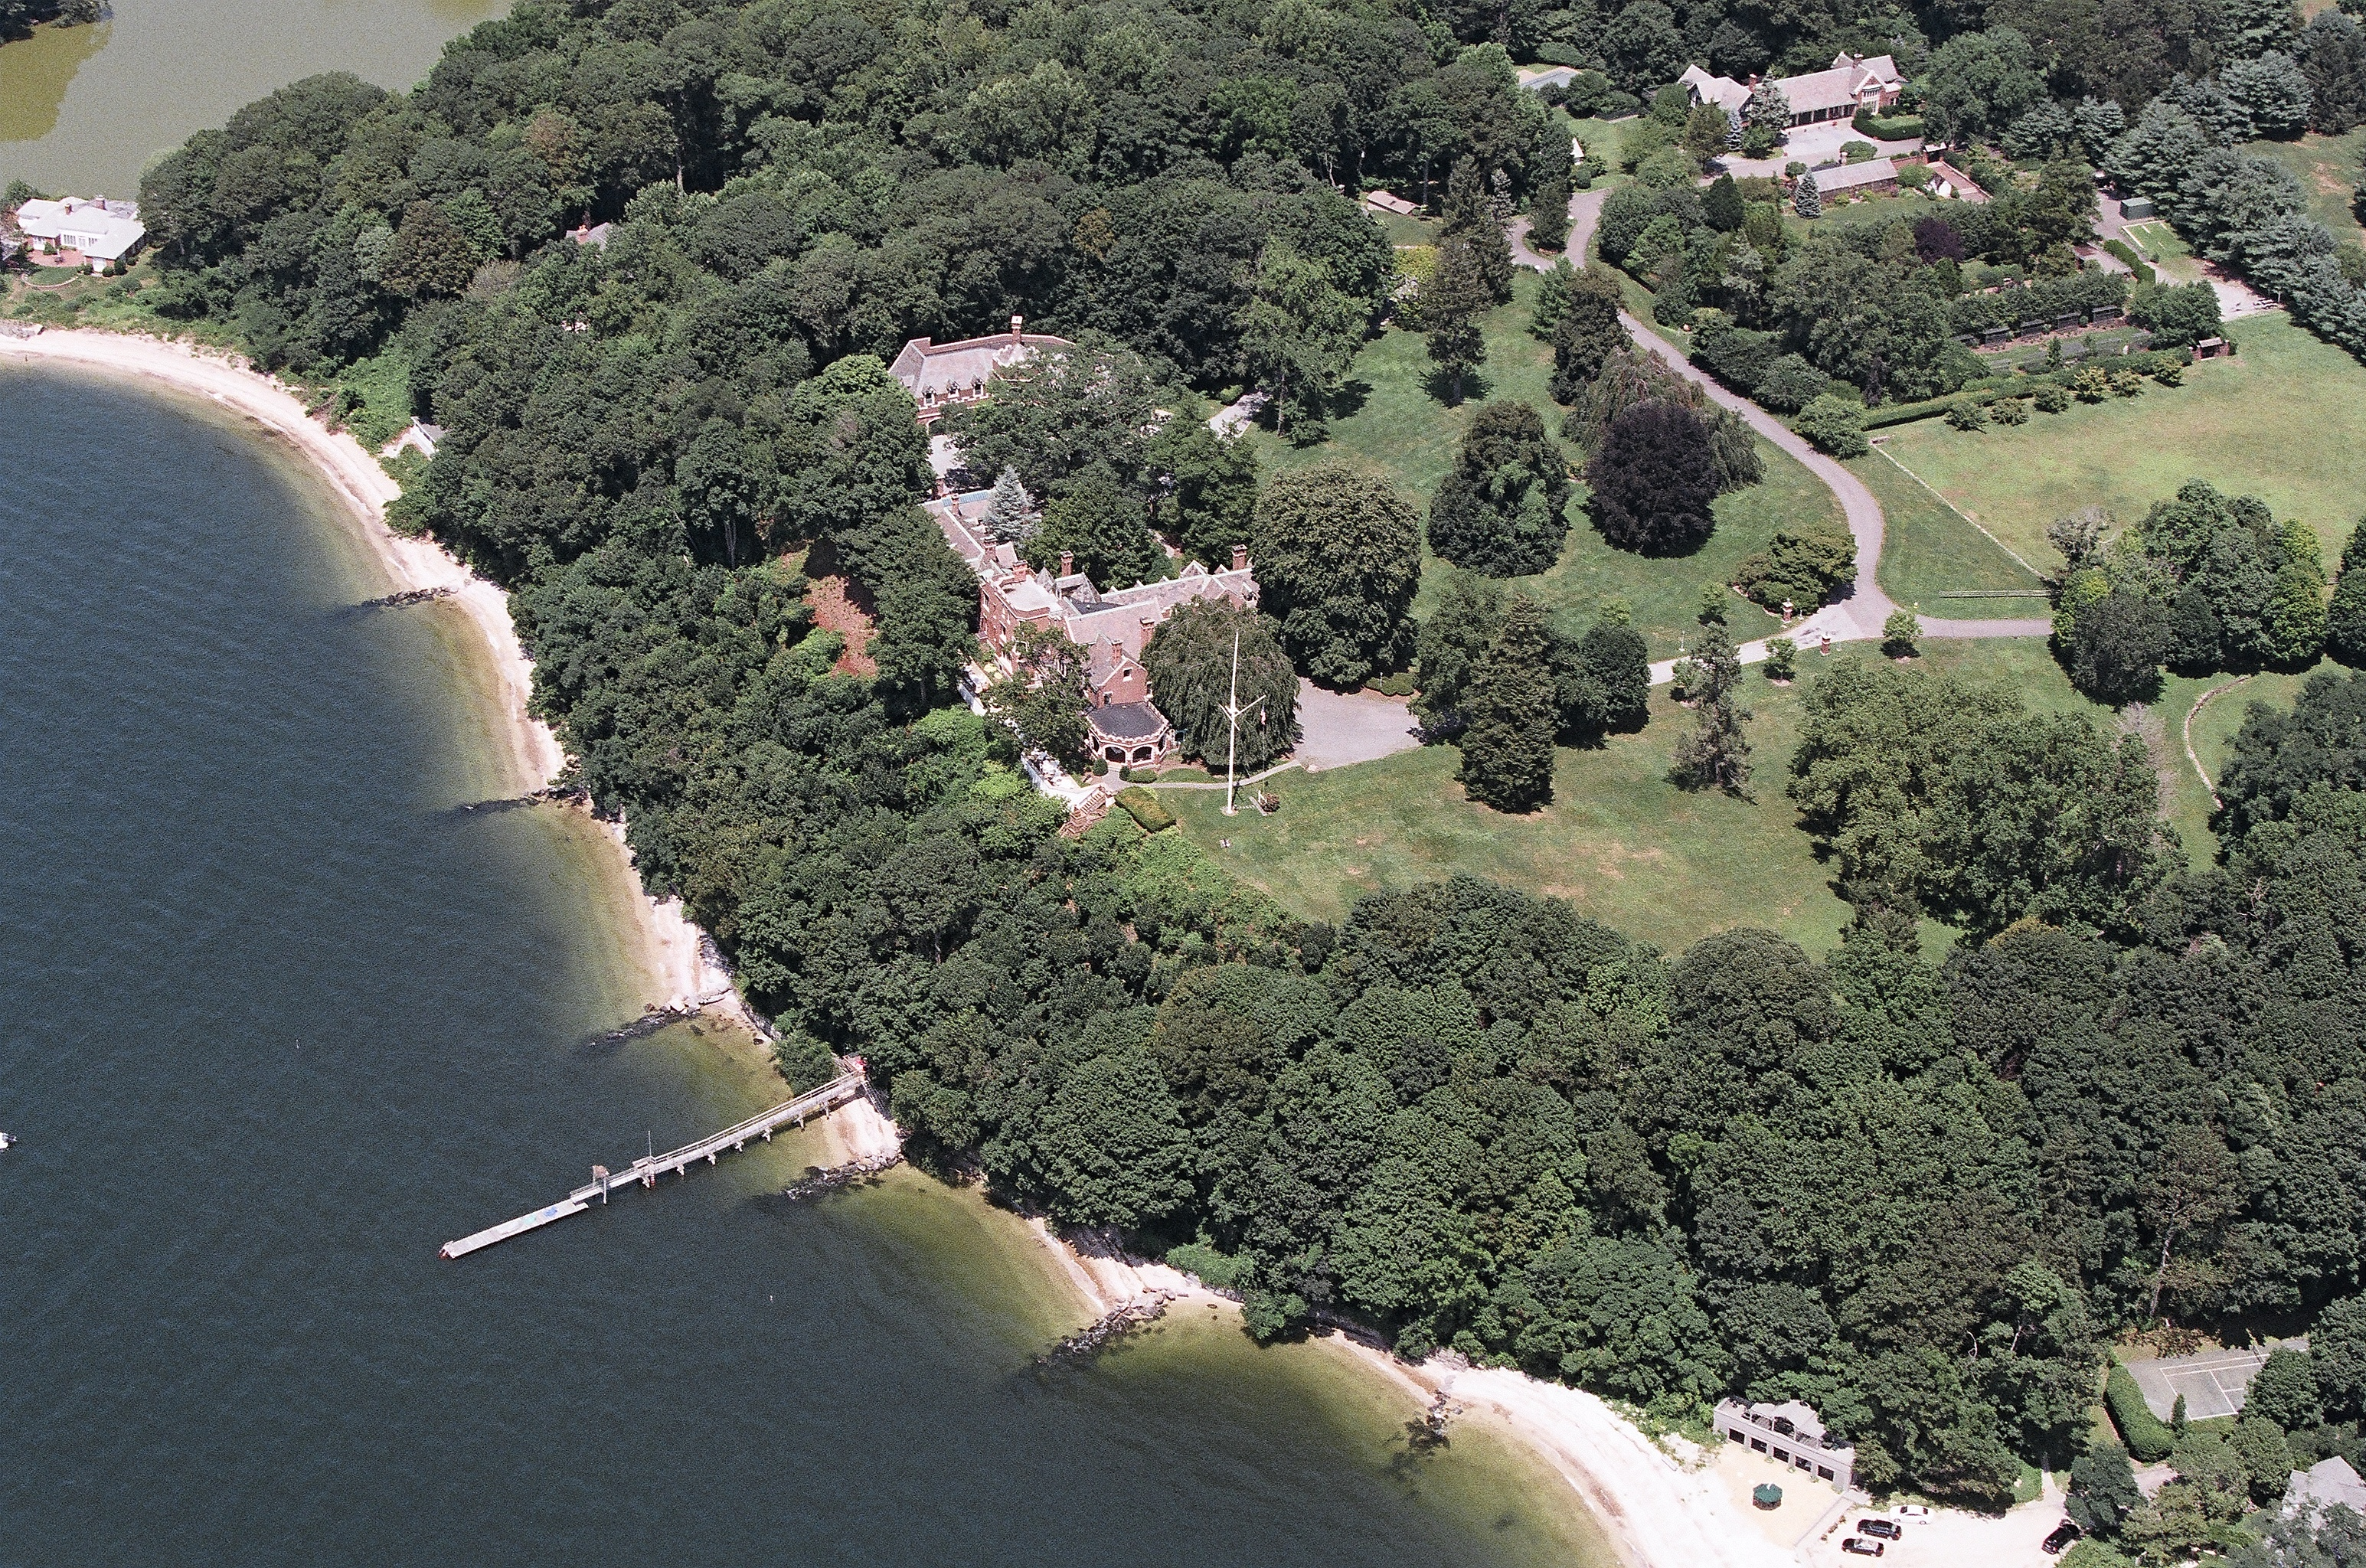 The Historical Waterfront Estate Is Nestled High On A Bluff Overlooking Cold Spring Harbor And Long Island Sound. It Encompasses Pver 10 Acres Of Unparalleled Property With 1800 Ft Beach Front With Dock. Lush Lawns, Squash Ct, Staff Quarters, 16 Car Garage, 3 Acre Formal Gardens And Much More. It Has Been Masterfully Restored To Its Original Glory. A True Gold Coast Gem!